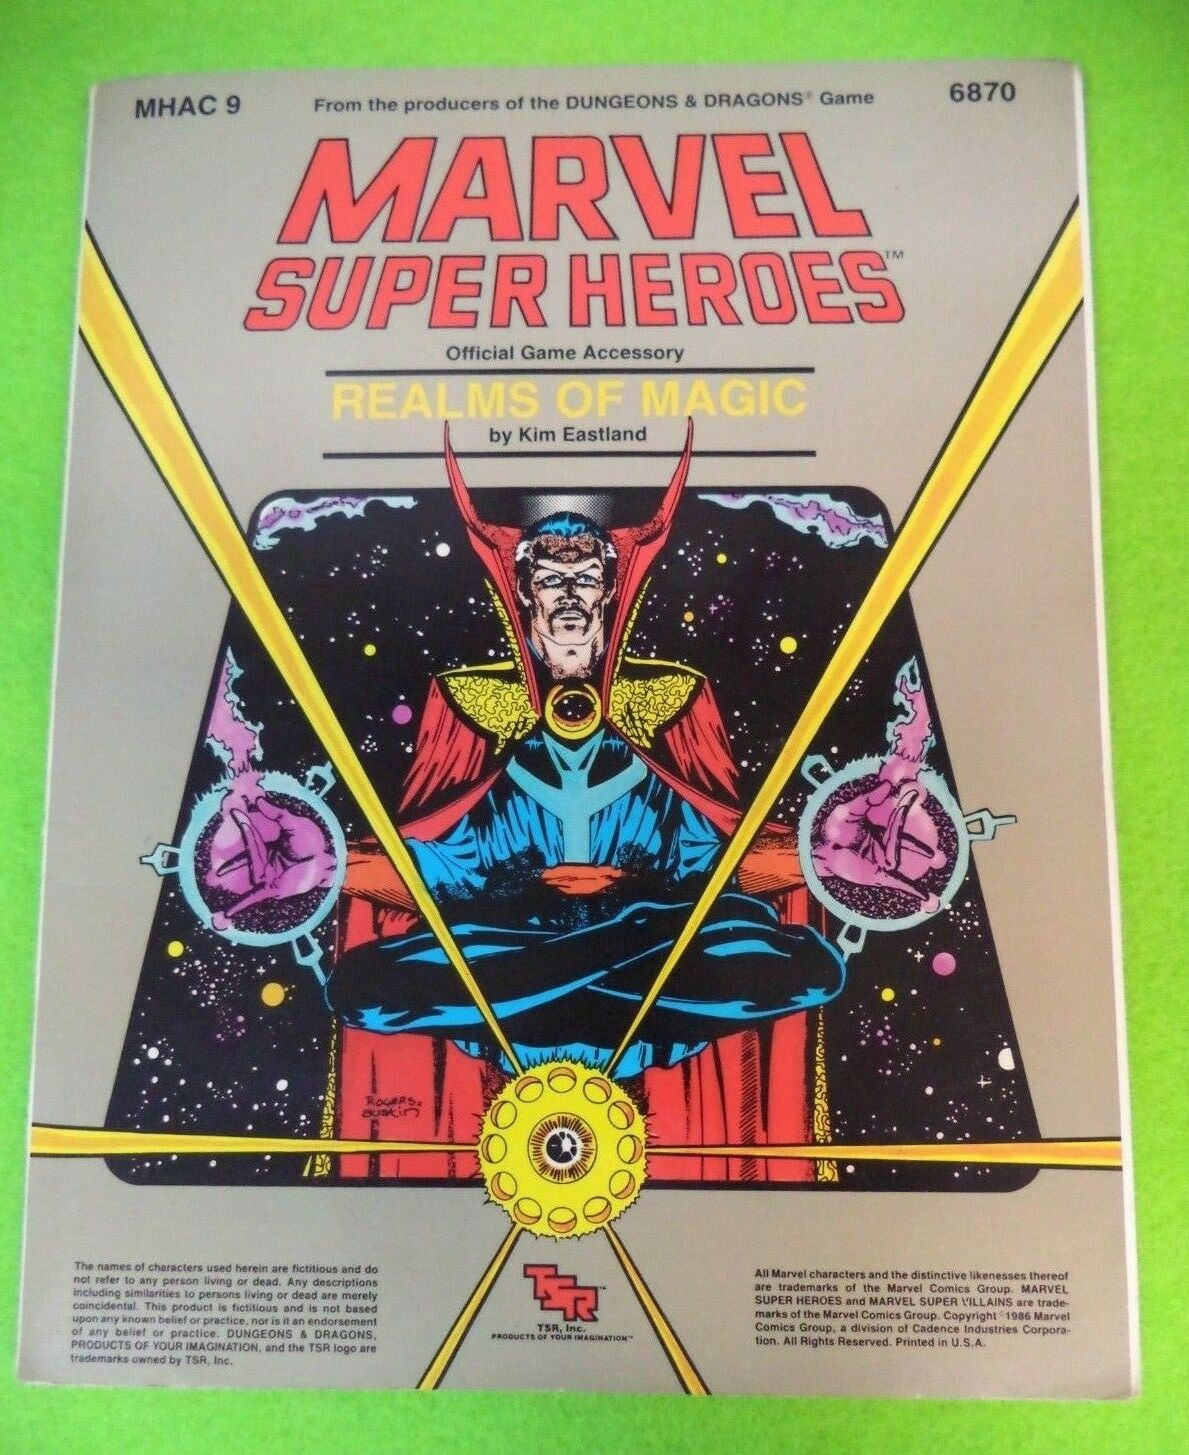 MARVEL SUPER HEROES realms of magic by KIM EASTLAND  MHAC 9 6870  MS1